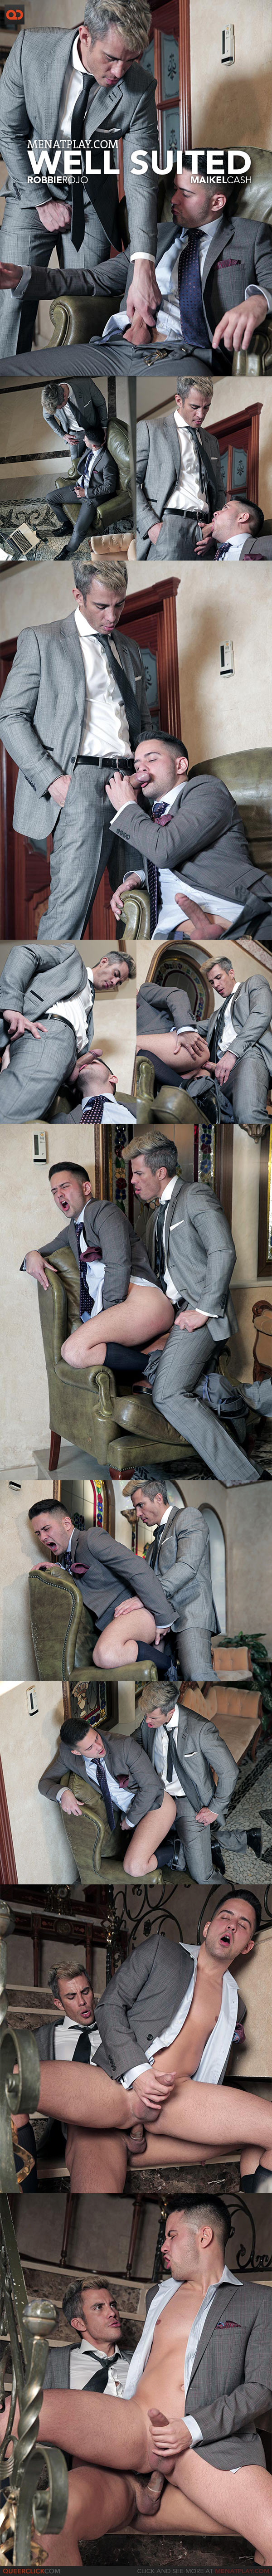 MenAtPlay: Well Suited - Robbie Rojo and Maikel Cash